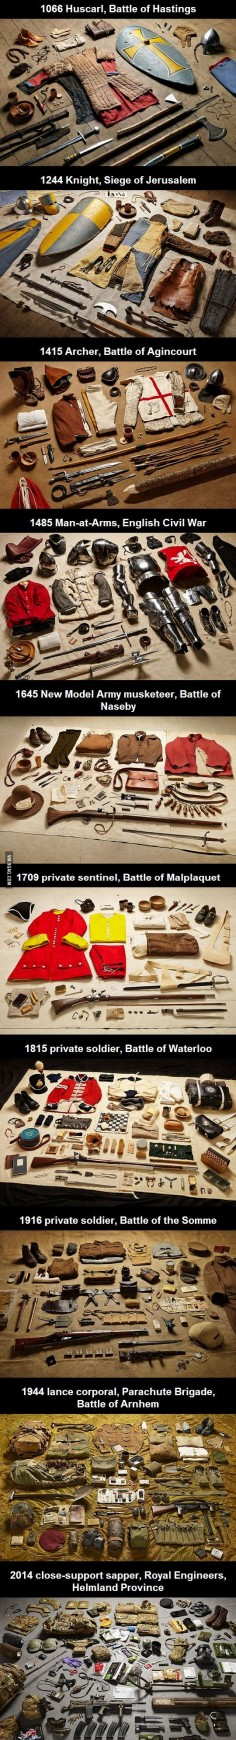 Military kit through the ages: from the Battle of Hastings to Helmand